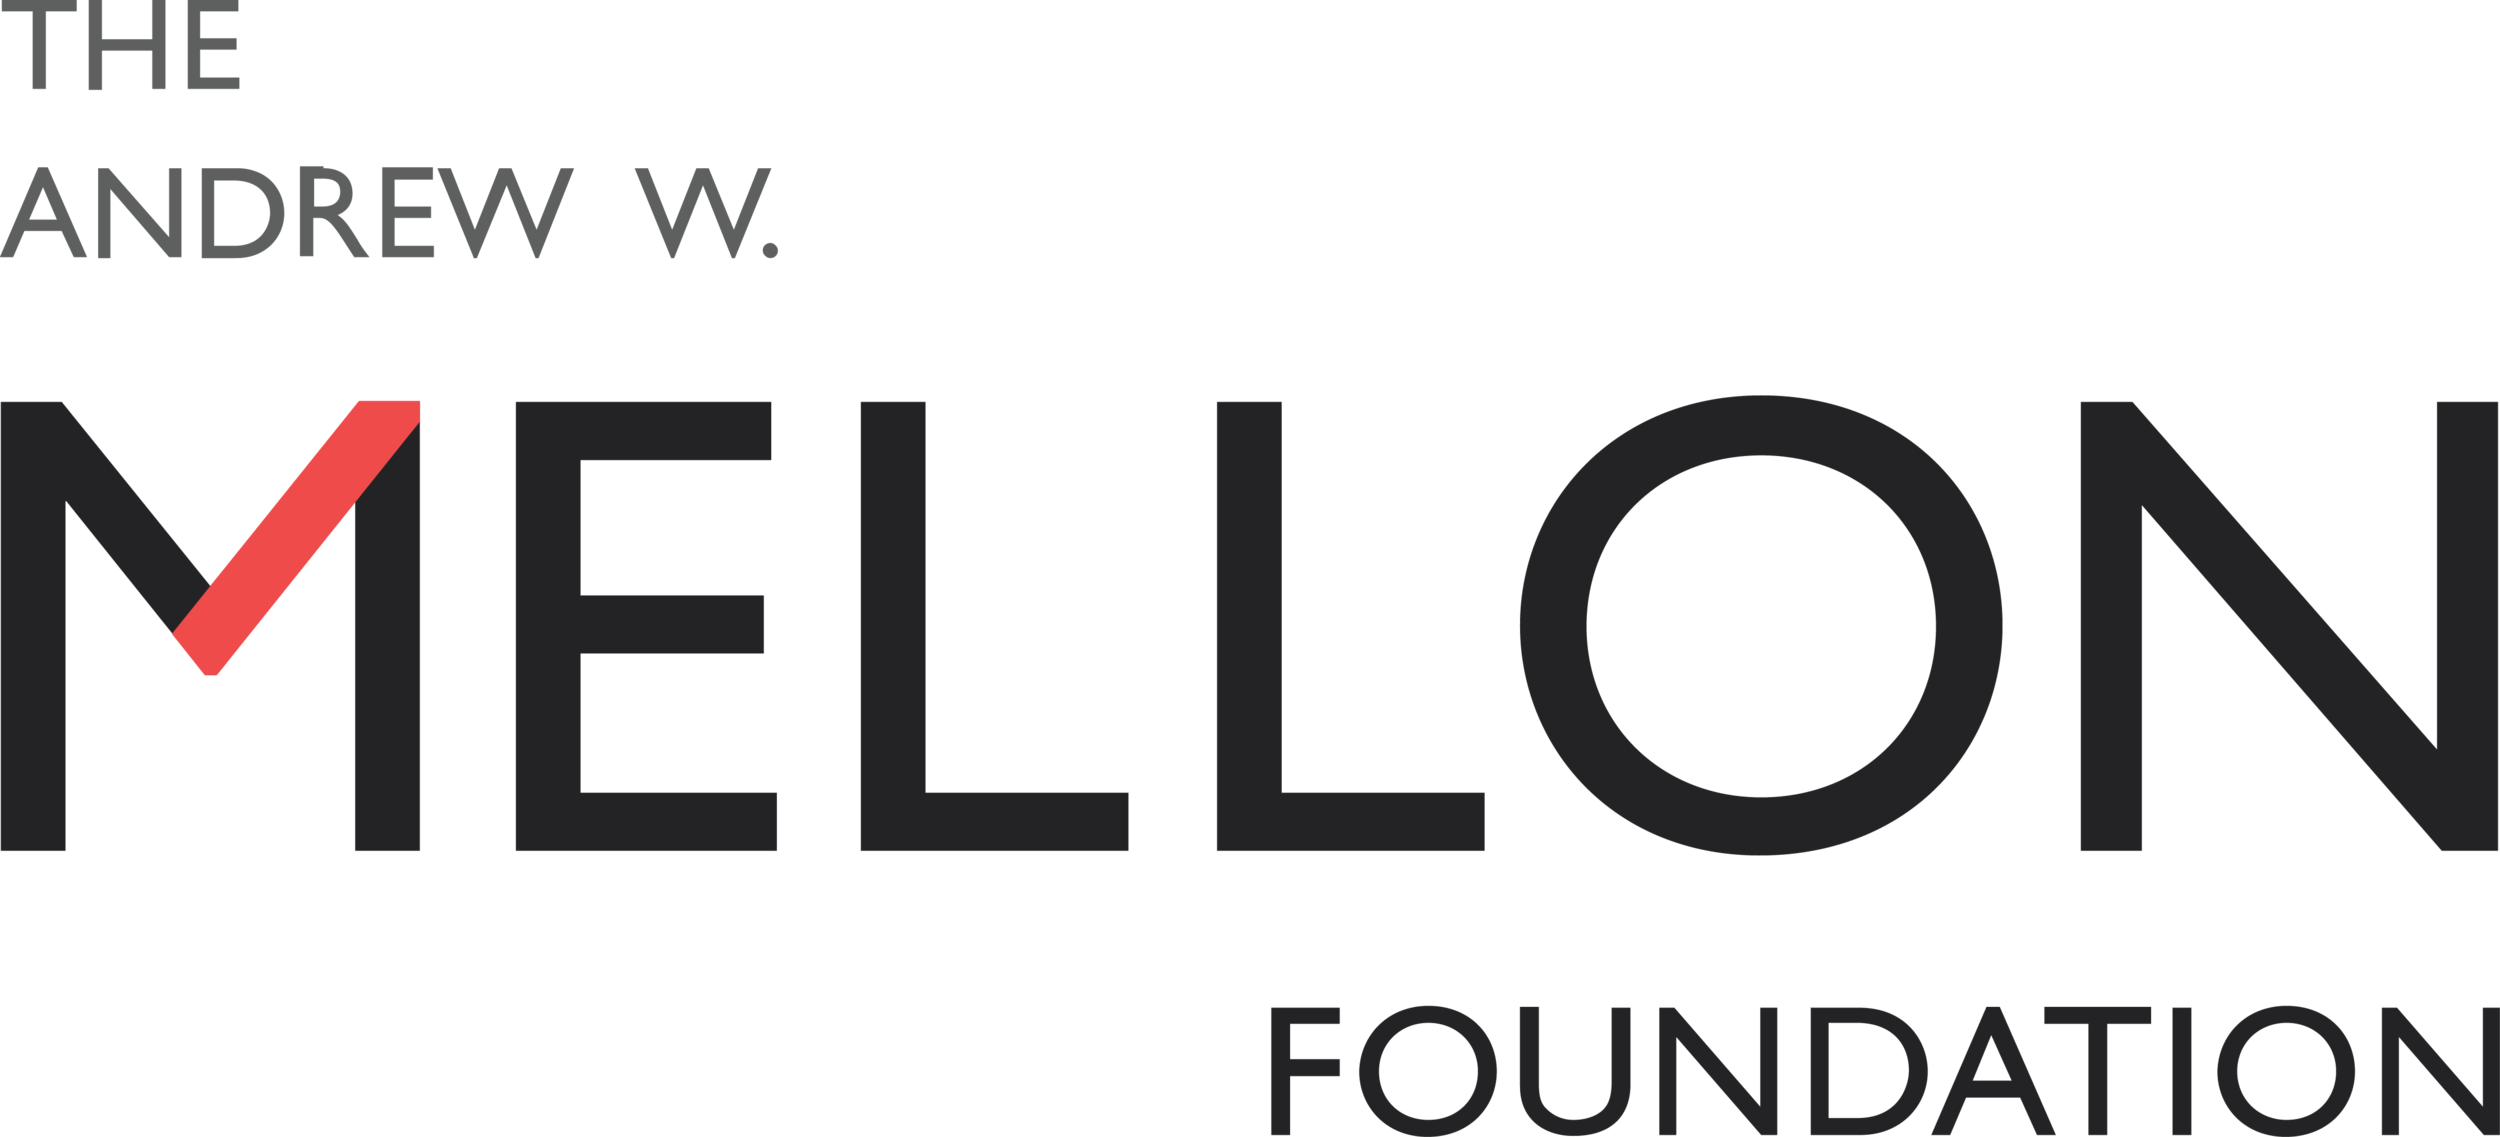 The-Andrew-W-Mellon-Foundation-1.png